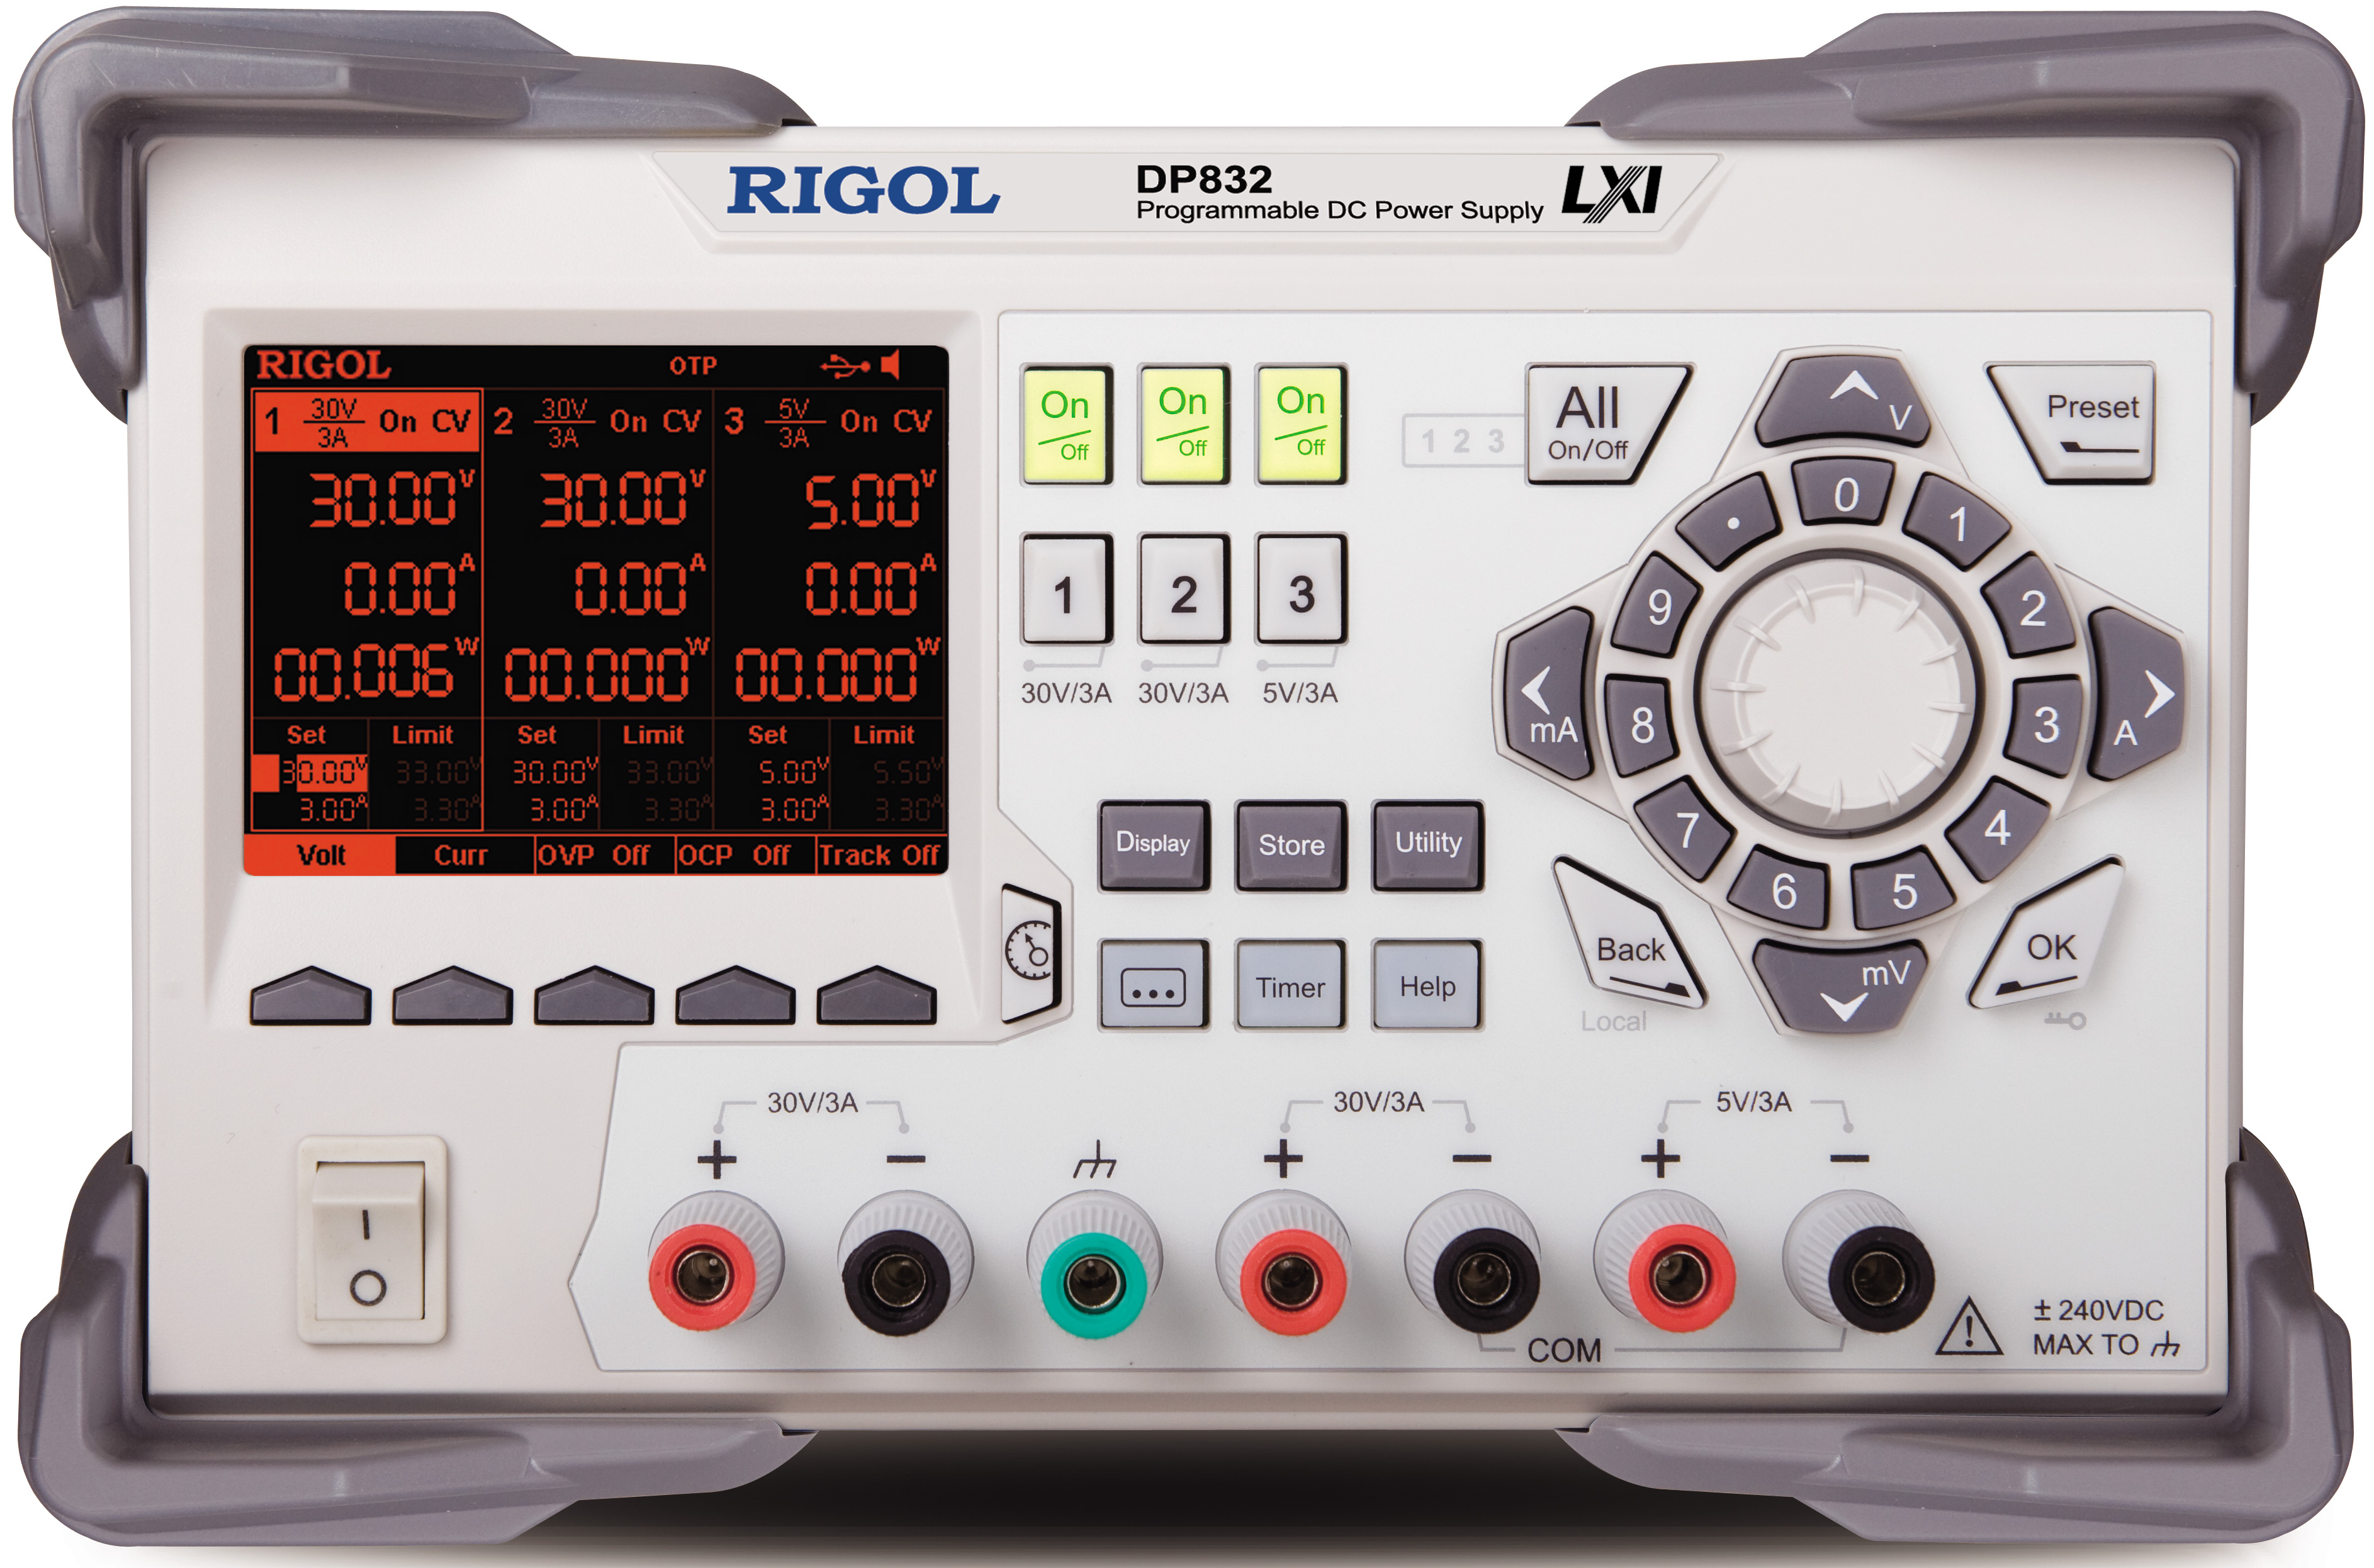 Rigol Complete Lab Kit Circuit Construction Acdc Virtual Screenshot 1 In The Dg1022